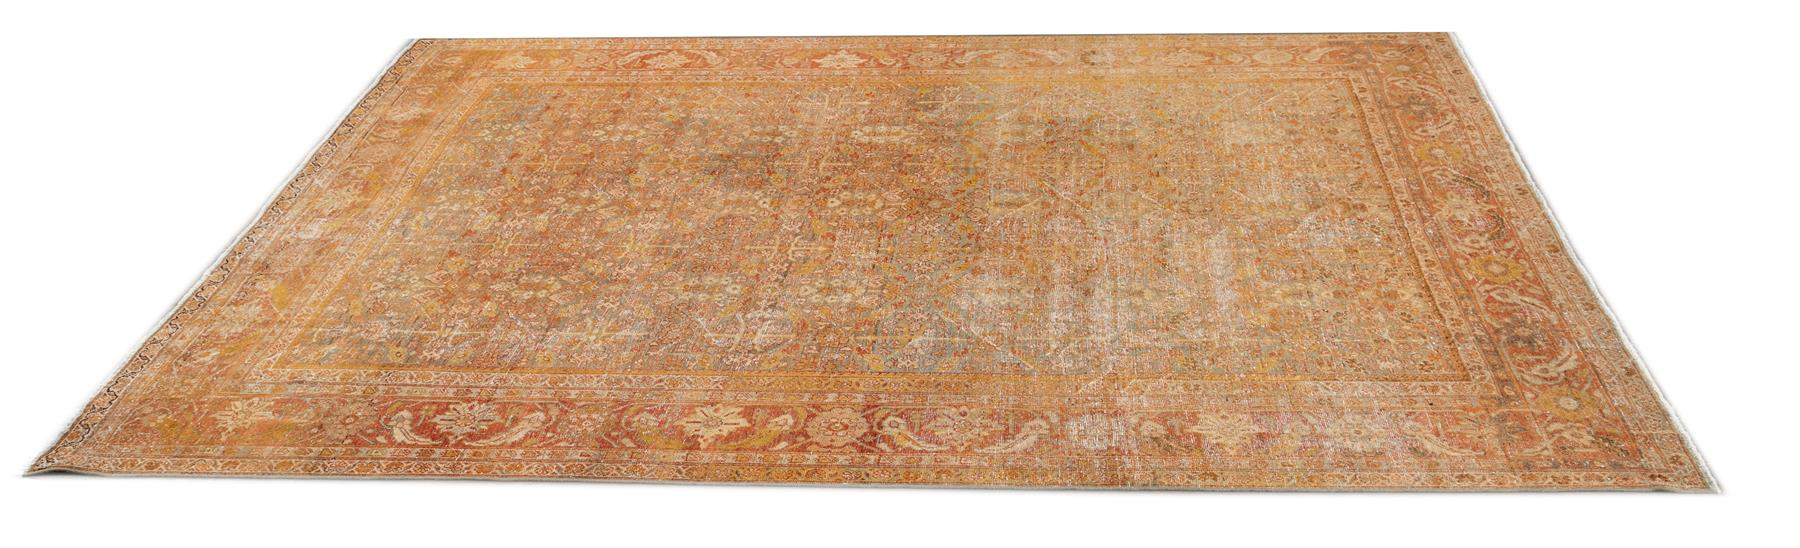 Antique Sultanabad Rug, #10235245, 9X11